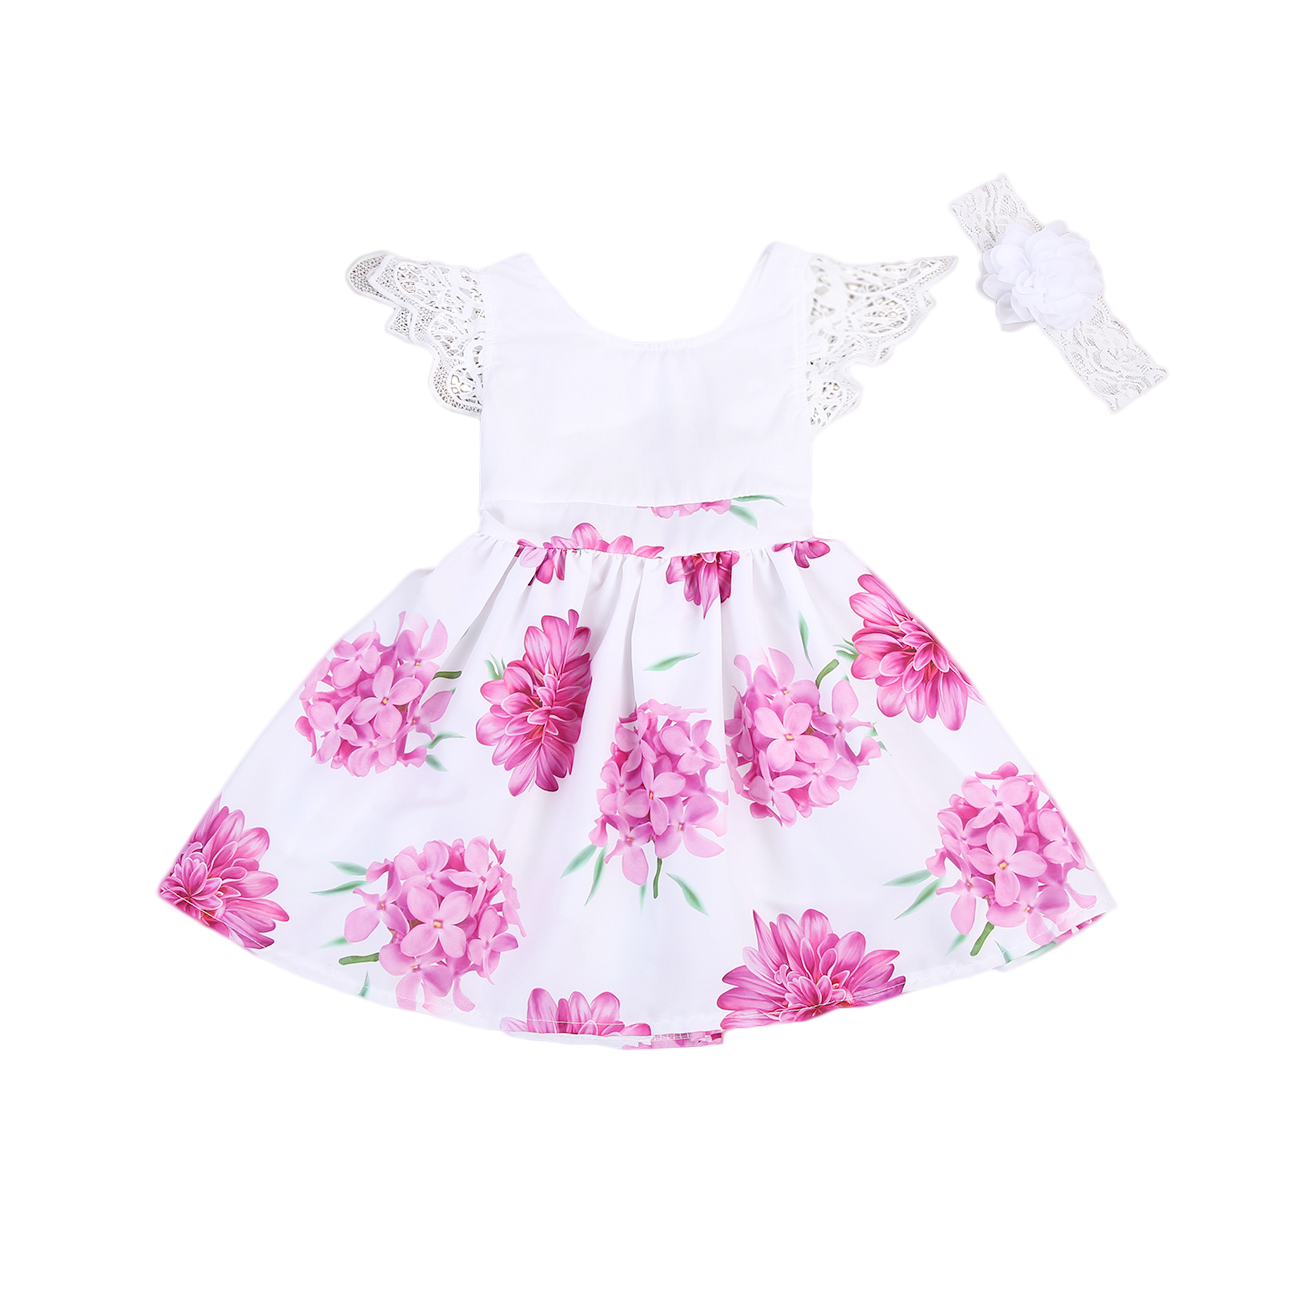 Kids Toddler Girls Floral Lace Dress Summer Princess Party Dress With Headband